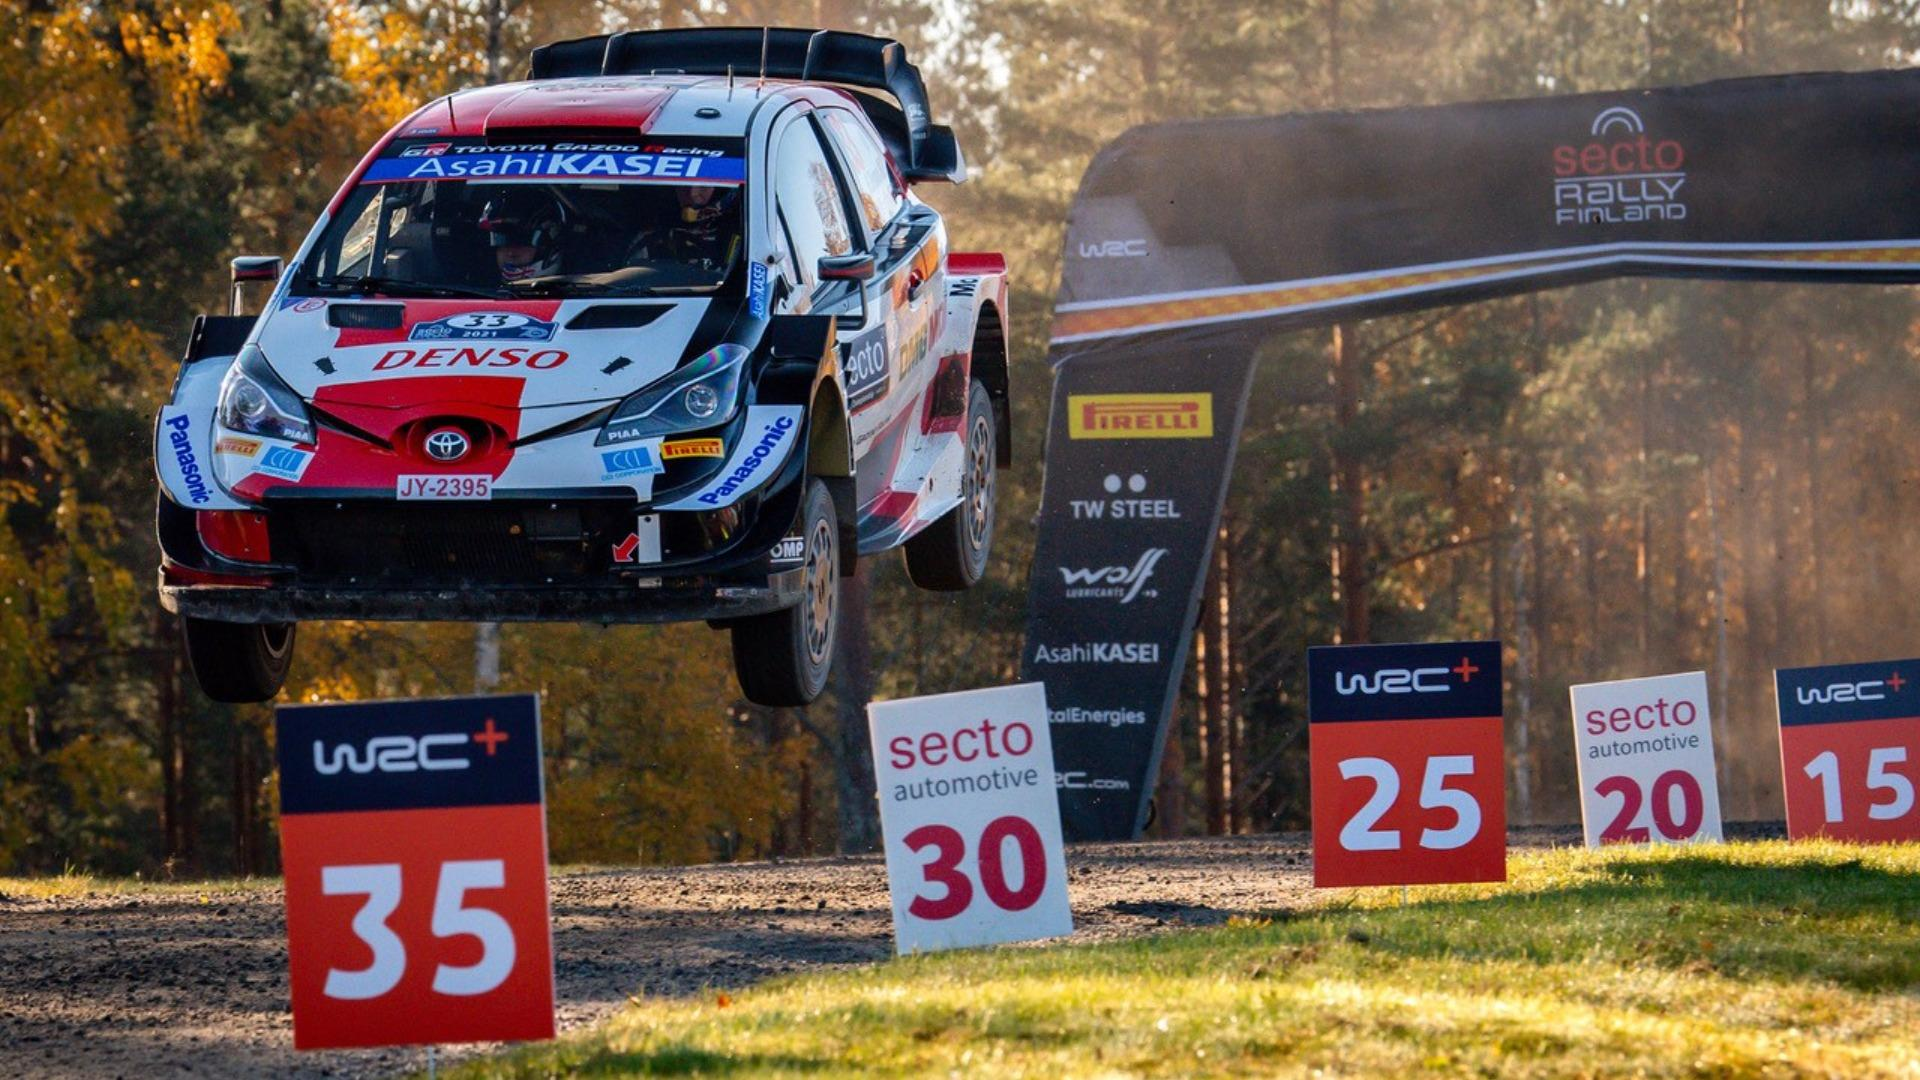 Secto Automotive Rally Finland 2021: Event Highlights